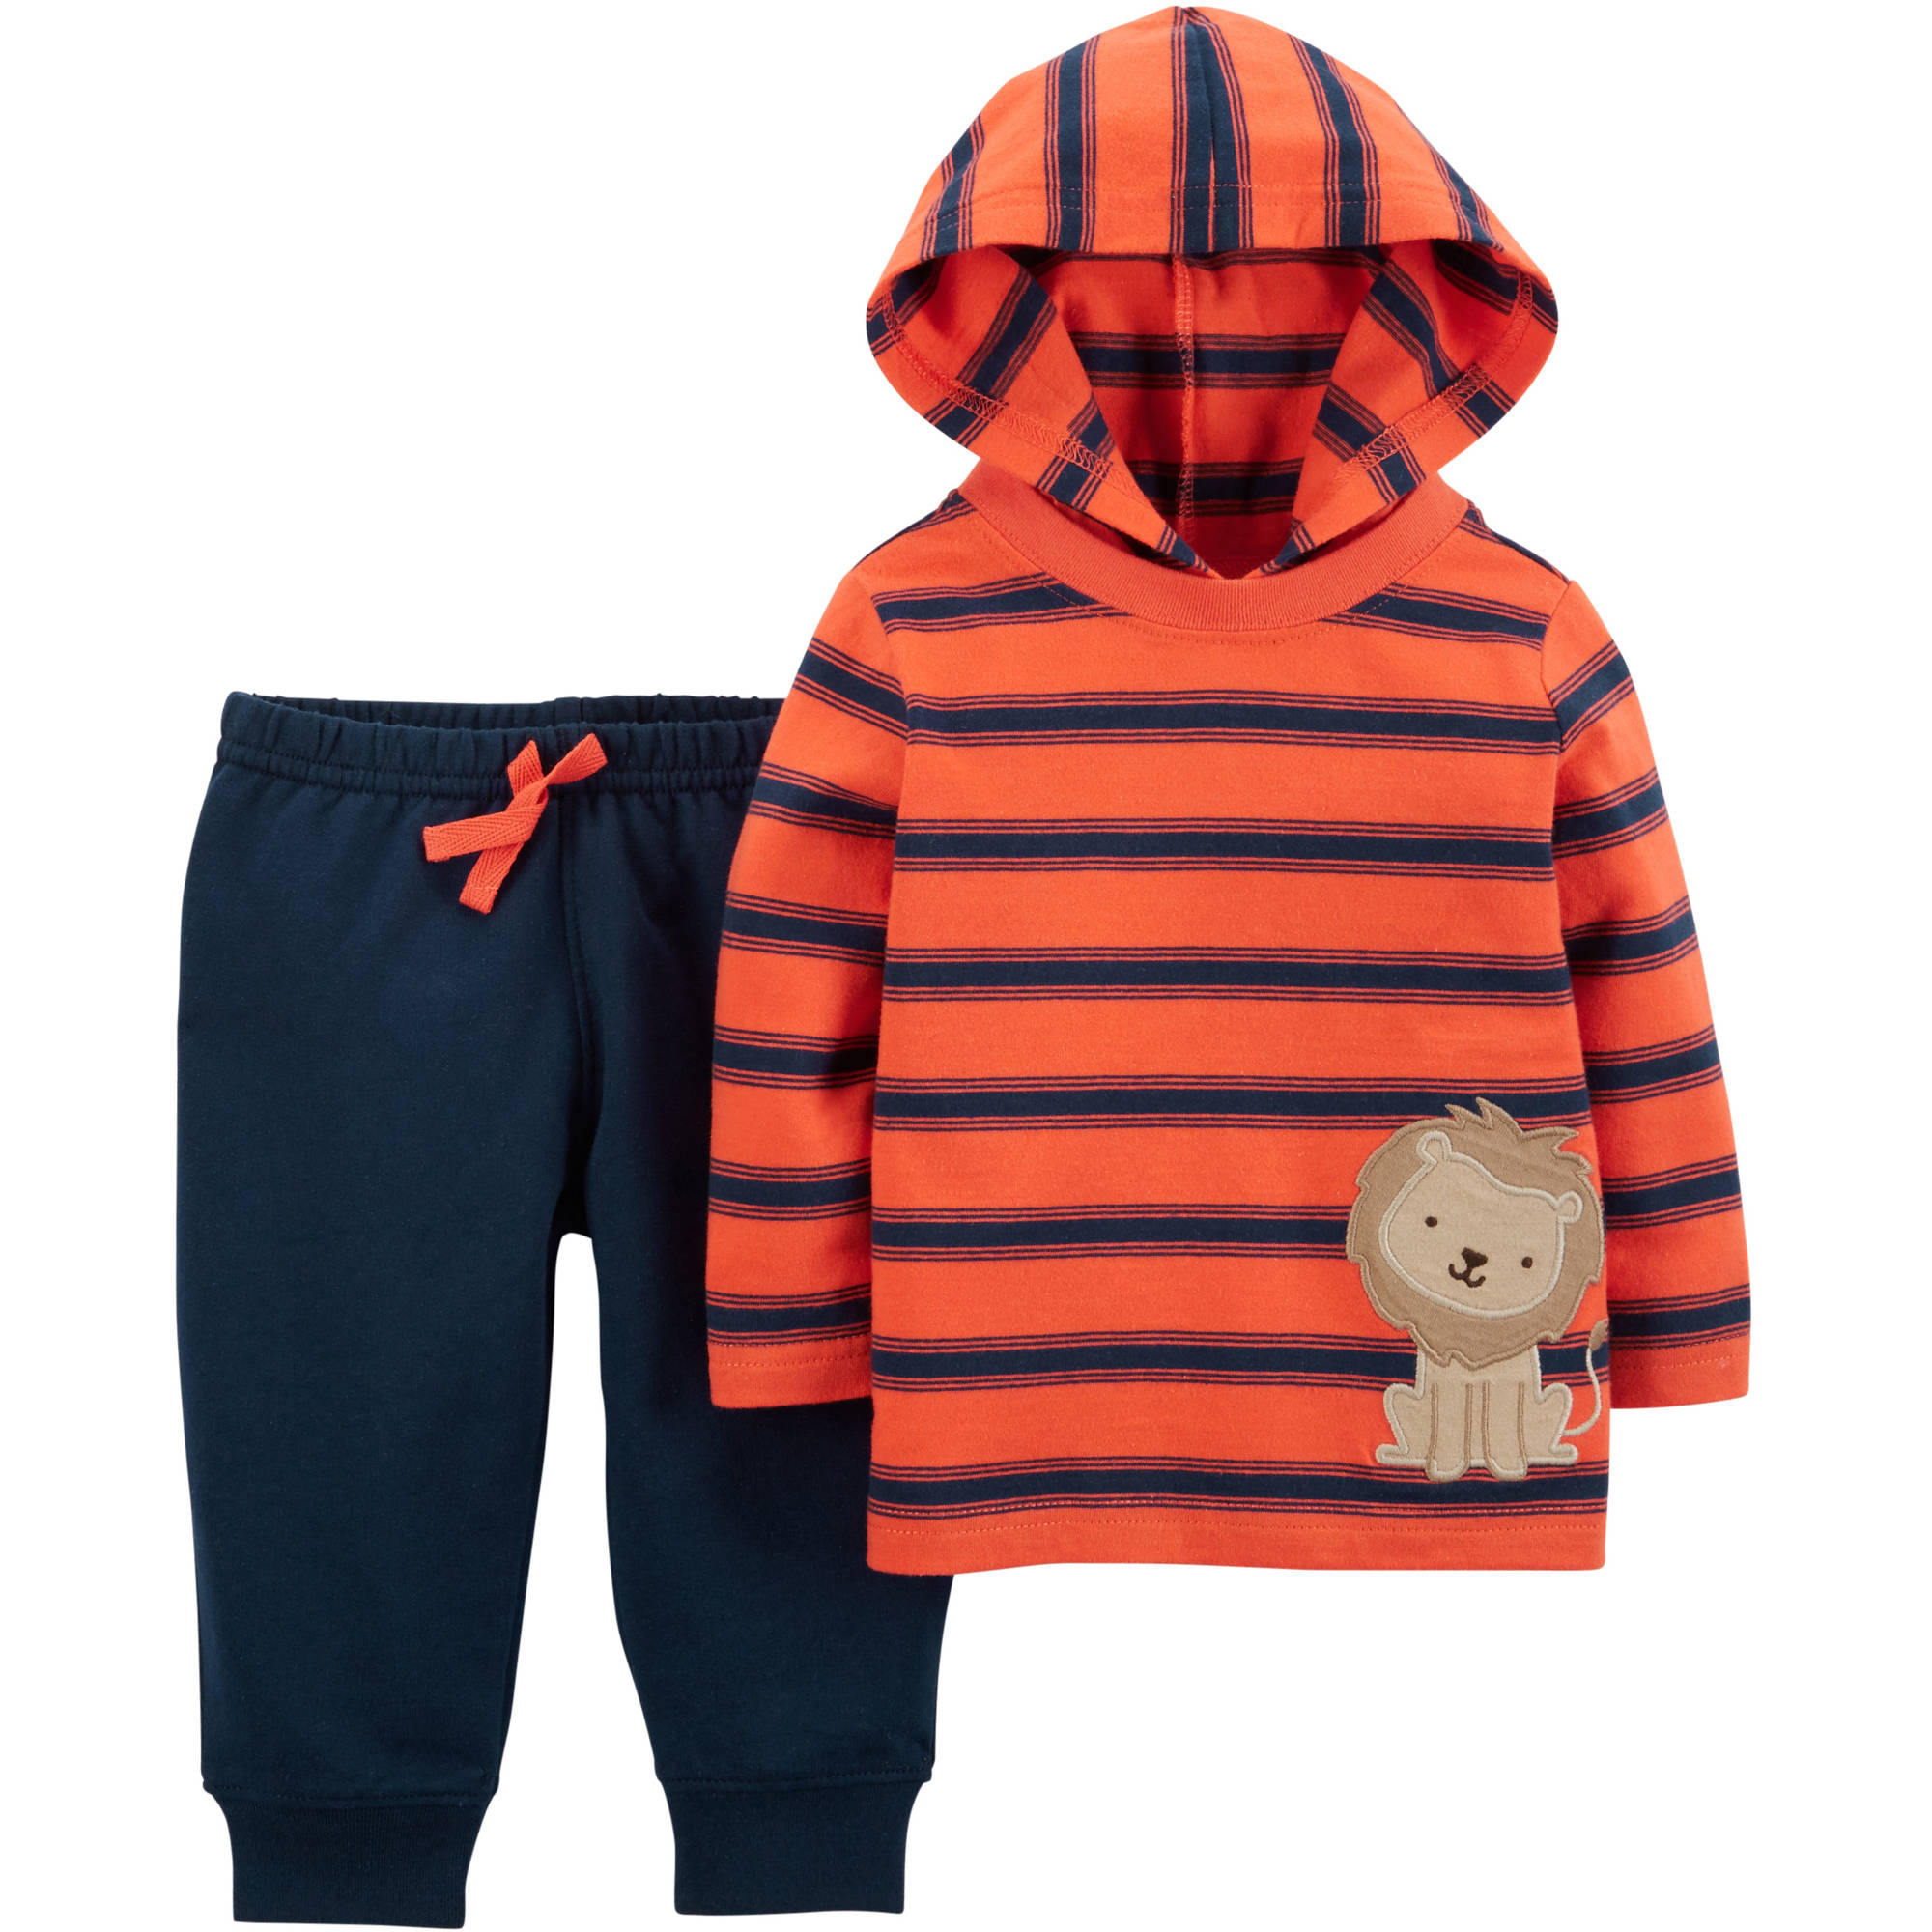 Child of Mine by Carter's Newborn Baby Boy Hoodie and Pants Outfit Set